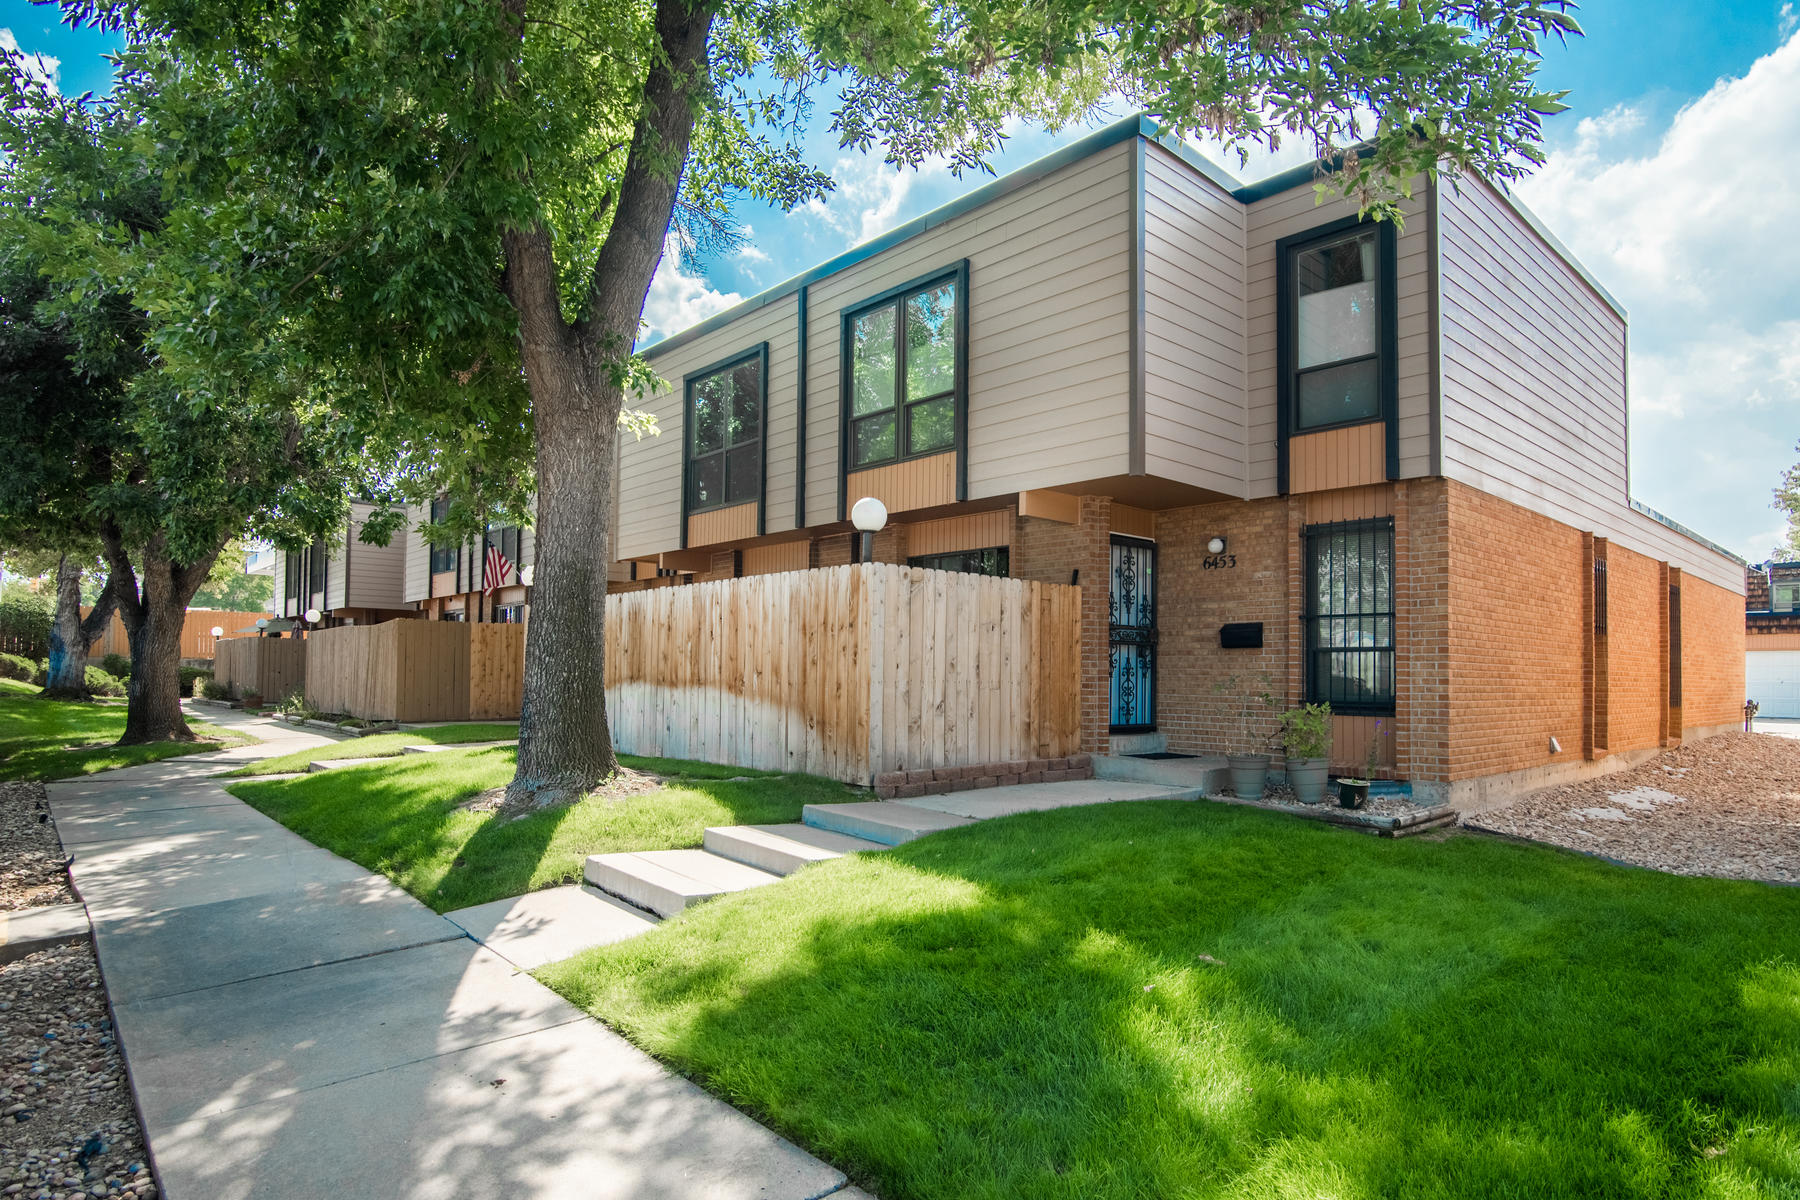 townhouses for Sale at Fantastic Updated Townhome with a Location to Make Enjoying Life Easy 6408 Welch Court Arvada, Colorado 80004 United States